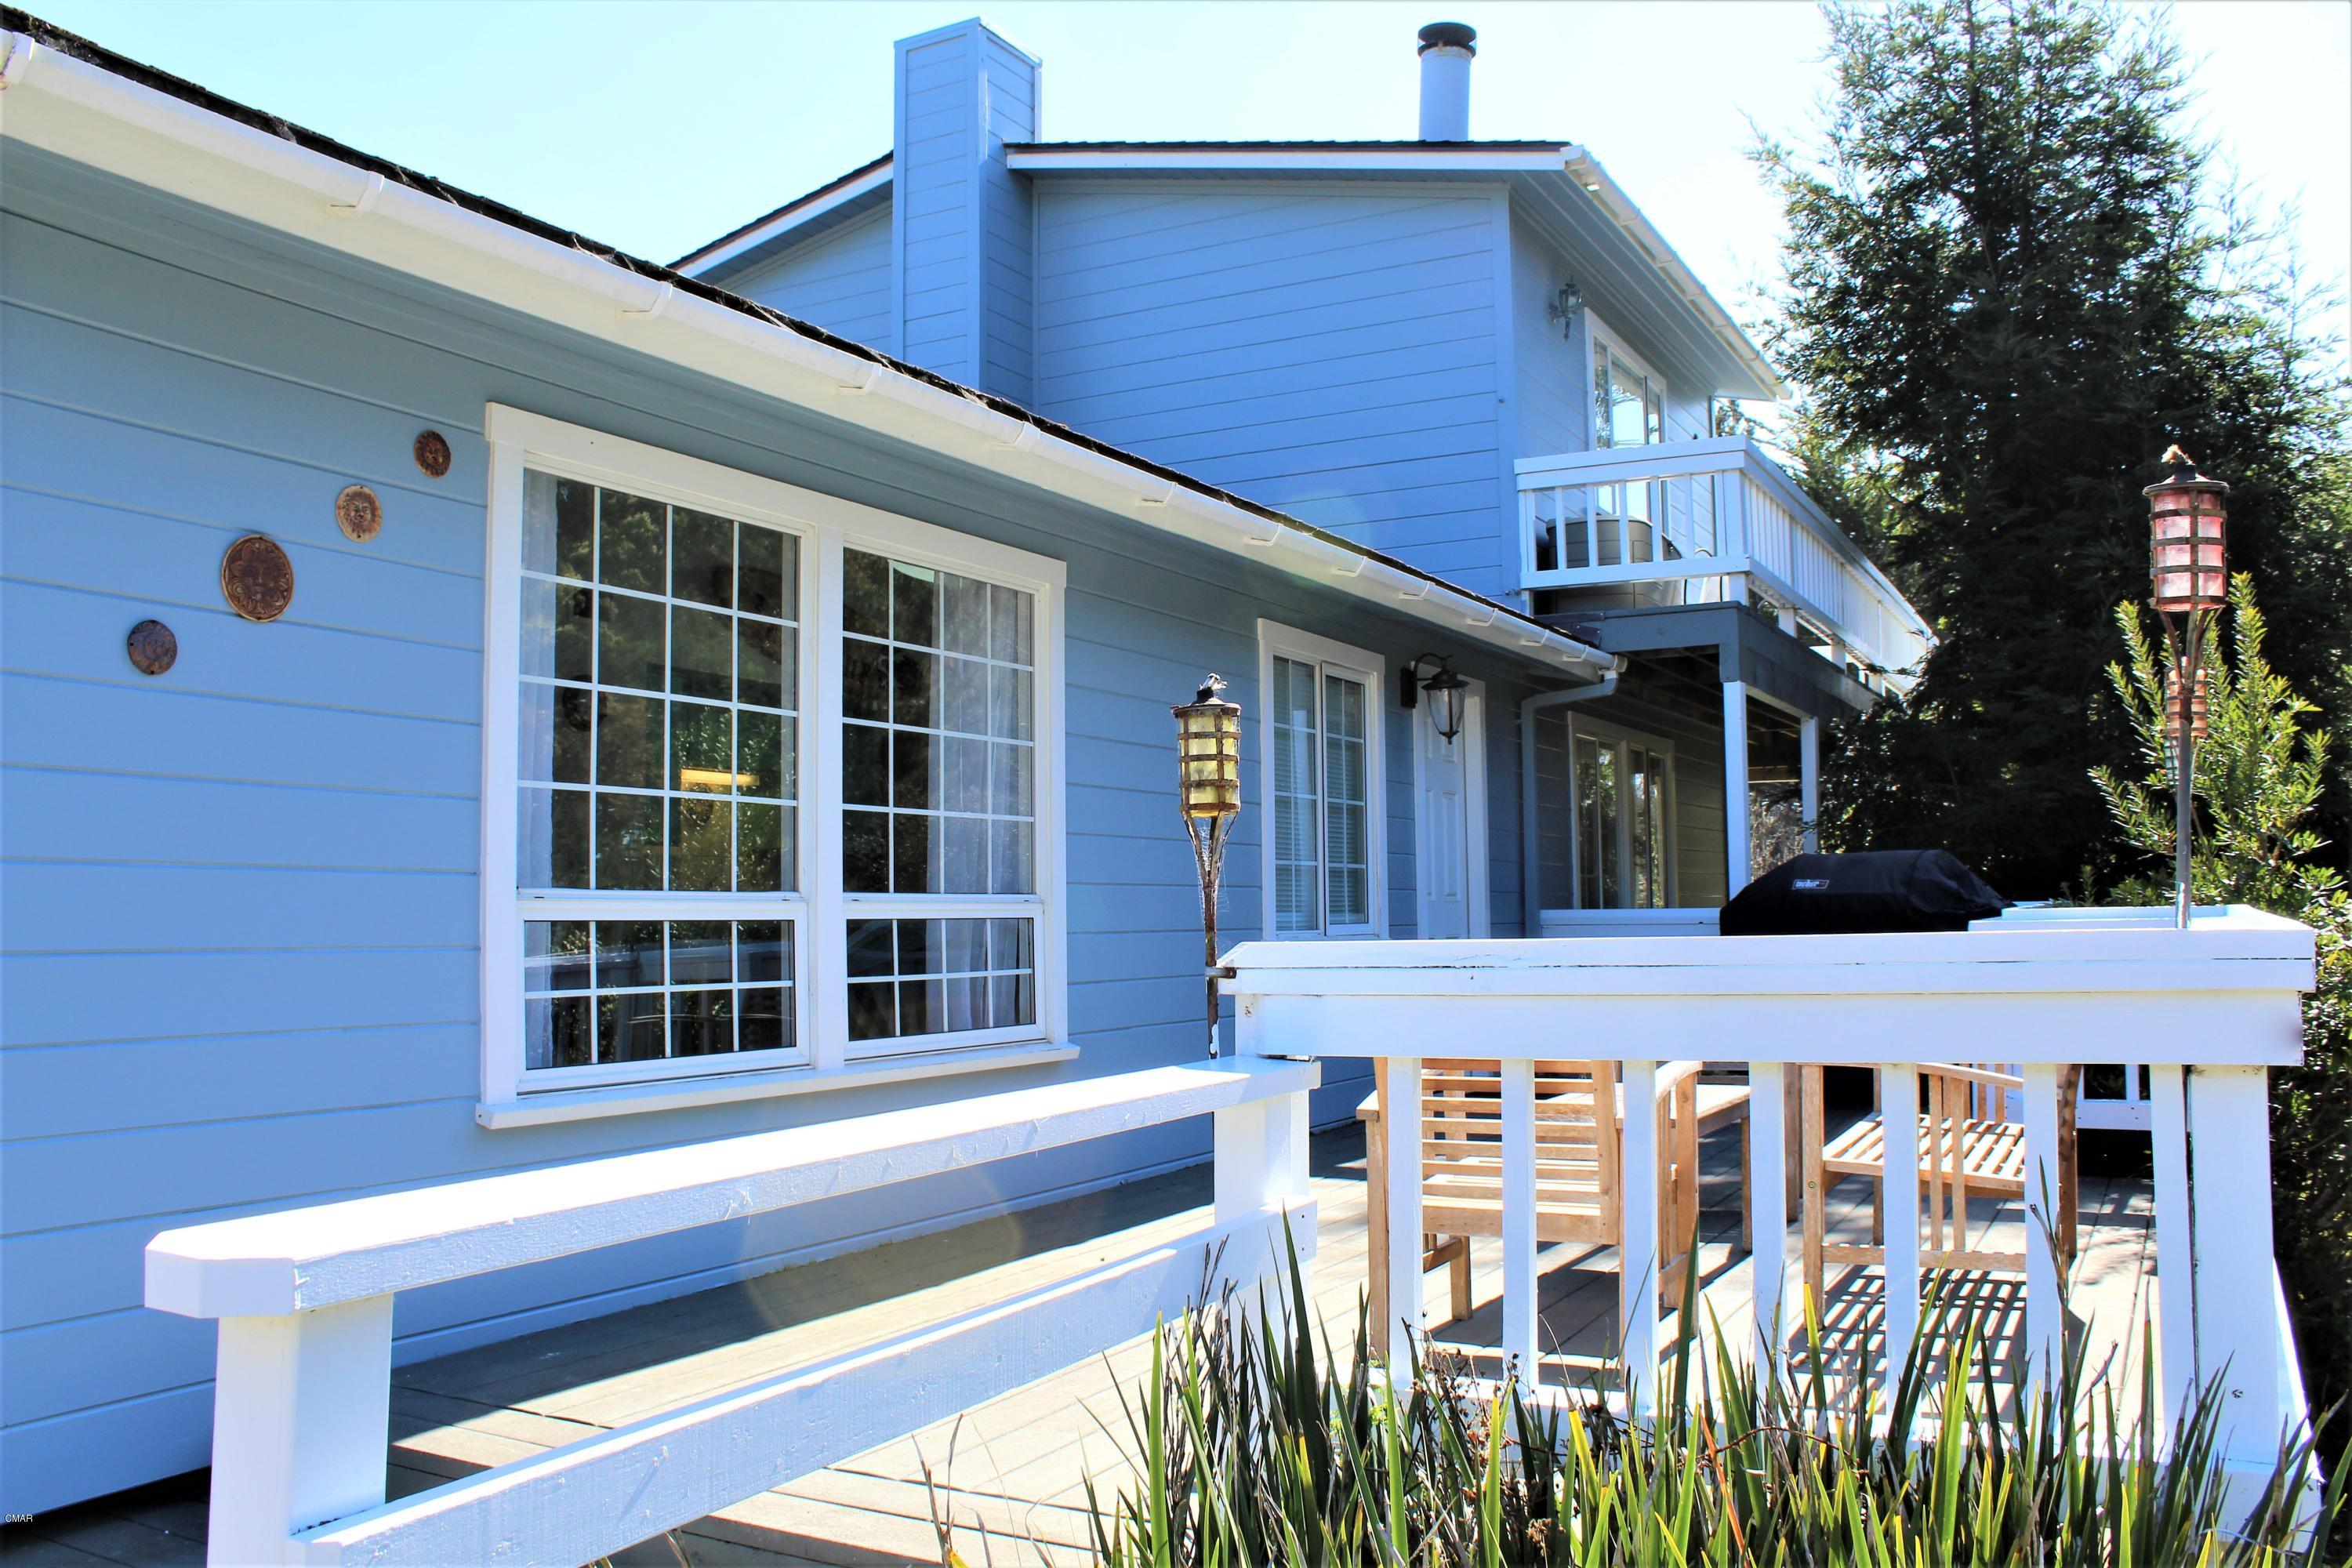 Home with guest unit is perfect for Mendocino get away or full time living.  Just half a mile north of the village on over an acre of park like land with pond. The house has three bedrooms and 1 1/2 baths, furnace, wood burning fireplace and lots of deck space for entertaining.  Upstairs with a separate entrance is a guest studio with bathroom, kitchenette, fireplace and large deck with south west exposure and a peak of the ocean. One or both areas can be vacation rented. Could also be an ideal home office situation.  Lots of possibilities!